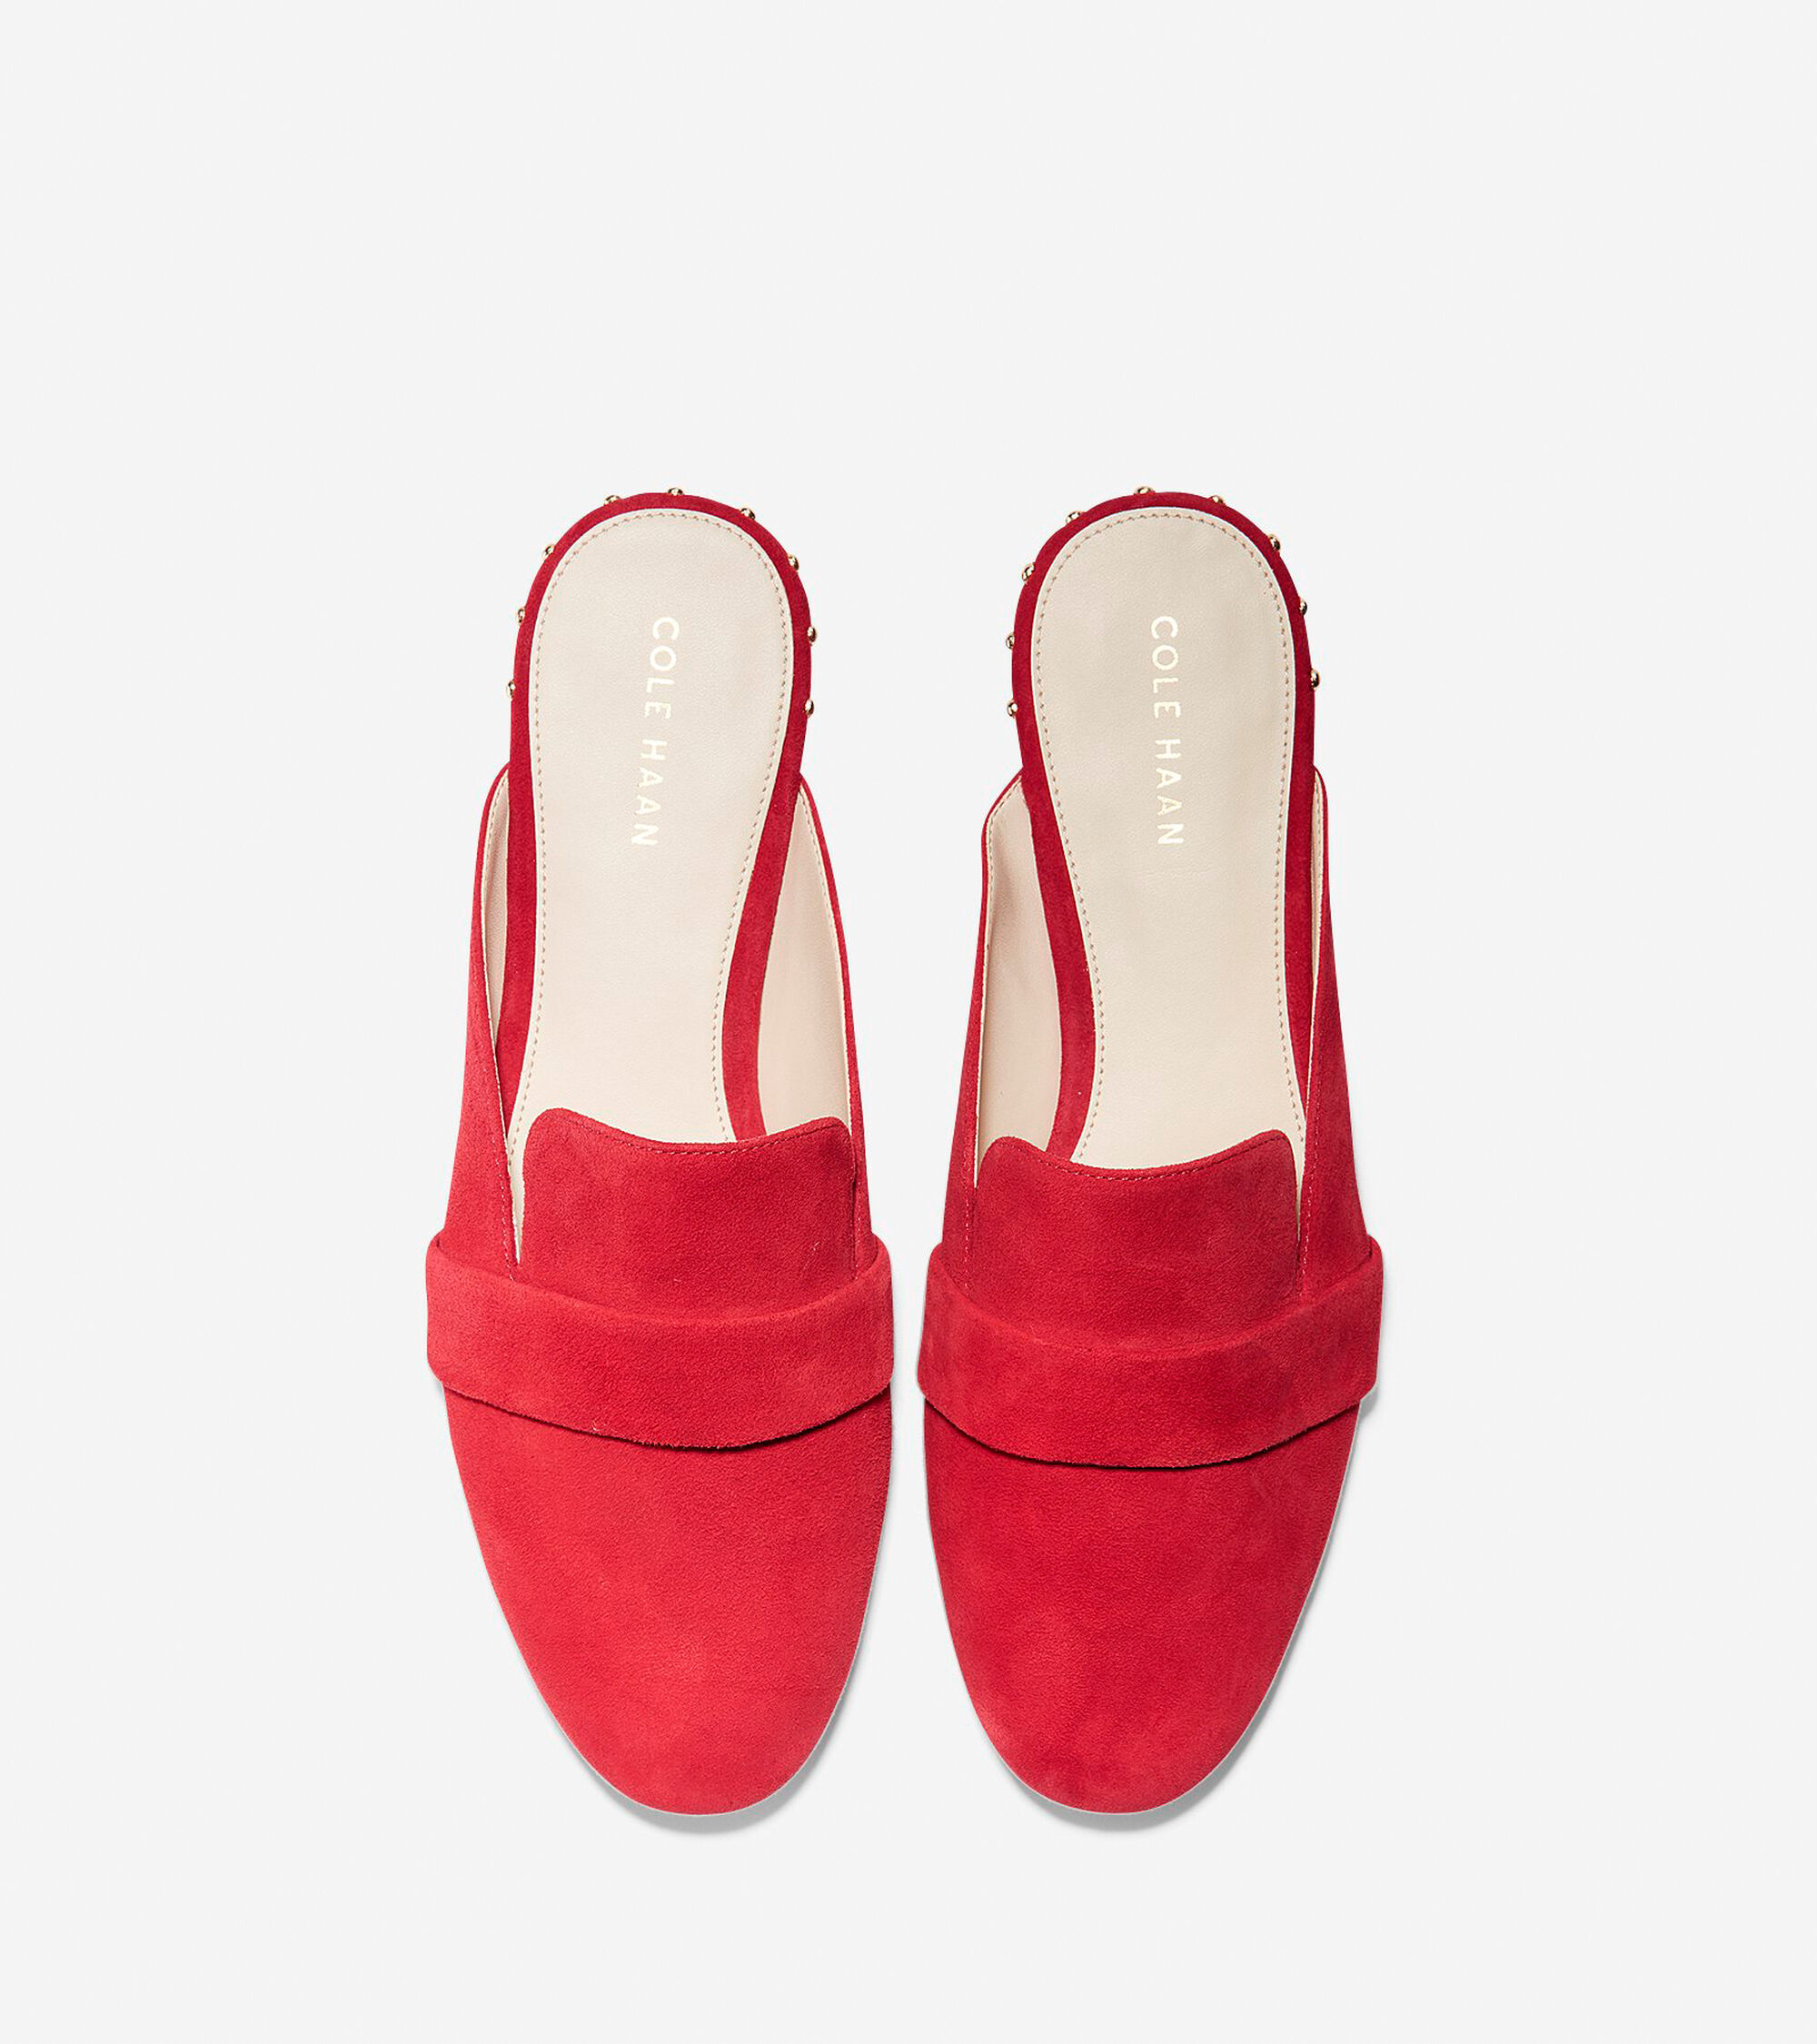 e0aba57878b Women s Deacon Loafer Mules in Barbados Cherry